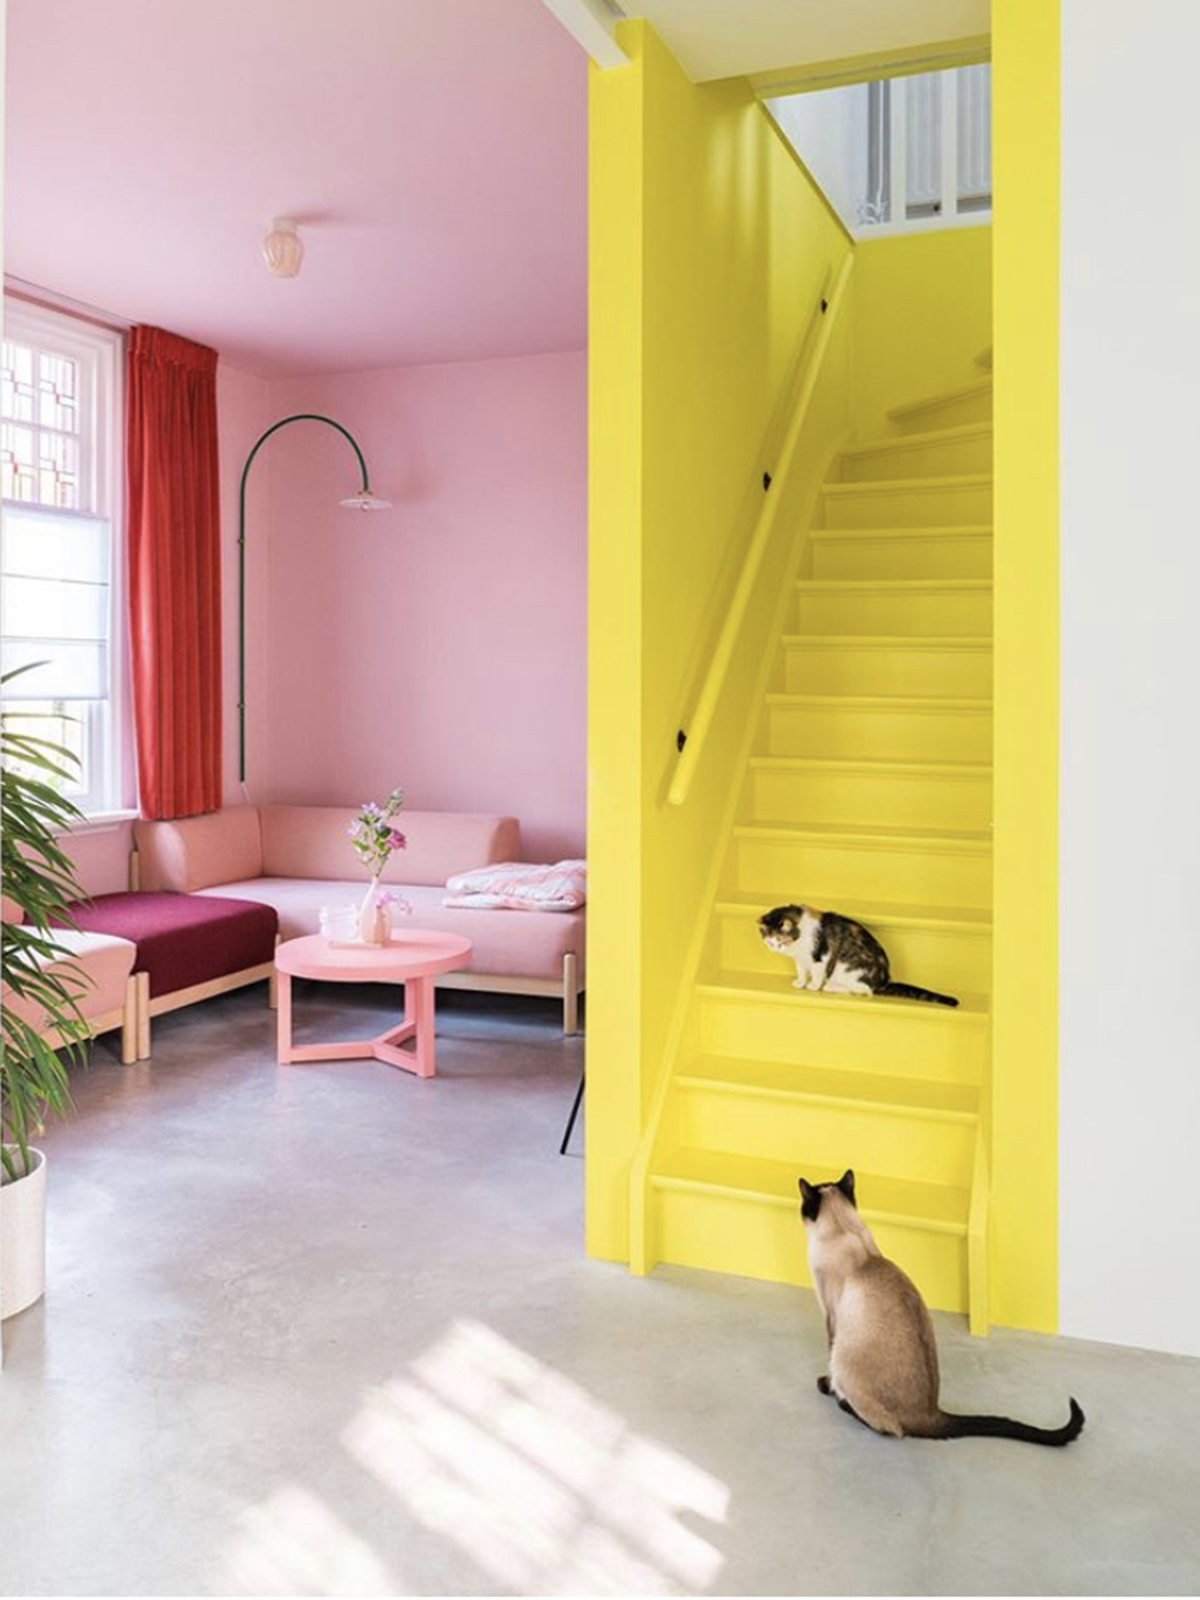 The bright yellow painted staircase and the contrasting pink living room create a striking style statement. Sophie Robinson selects this scheme as part of her colour crush feature on yellow & pink #pinkandyellow #colourcrush #sophierobinson